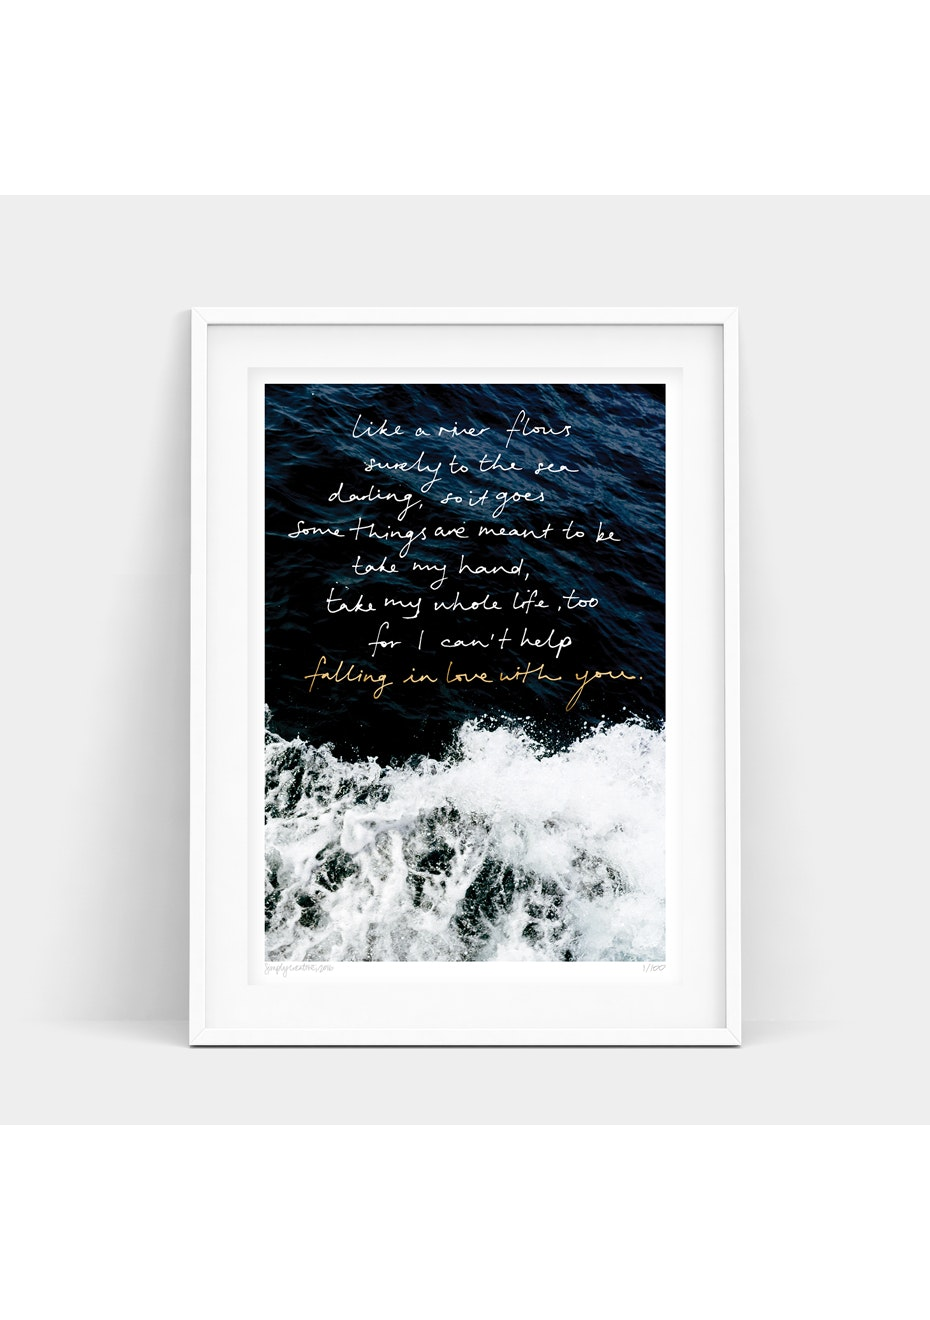 Simply Creative - Beauty Behind The Lyrics - A3 Gold Foil Limited Edition  Print